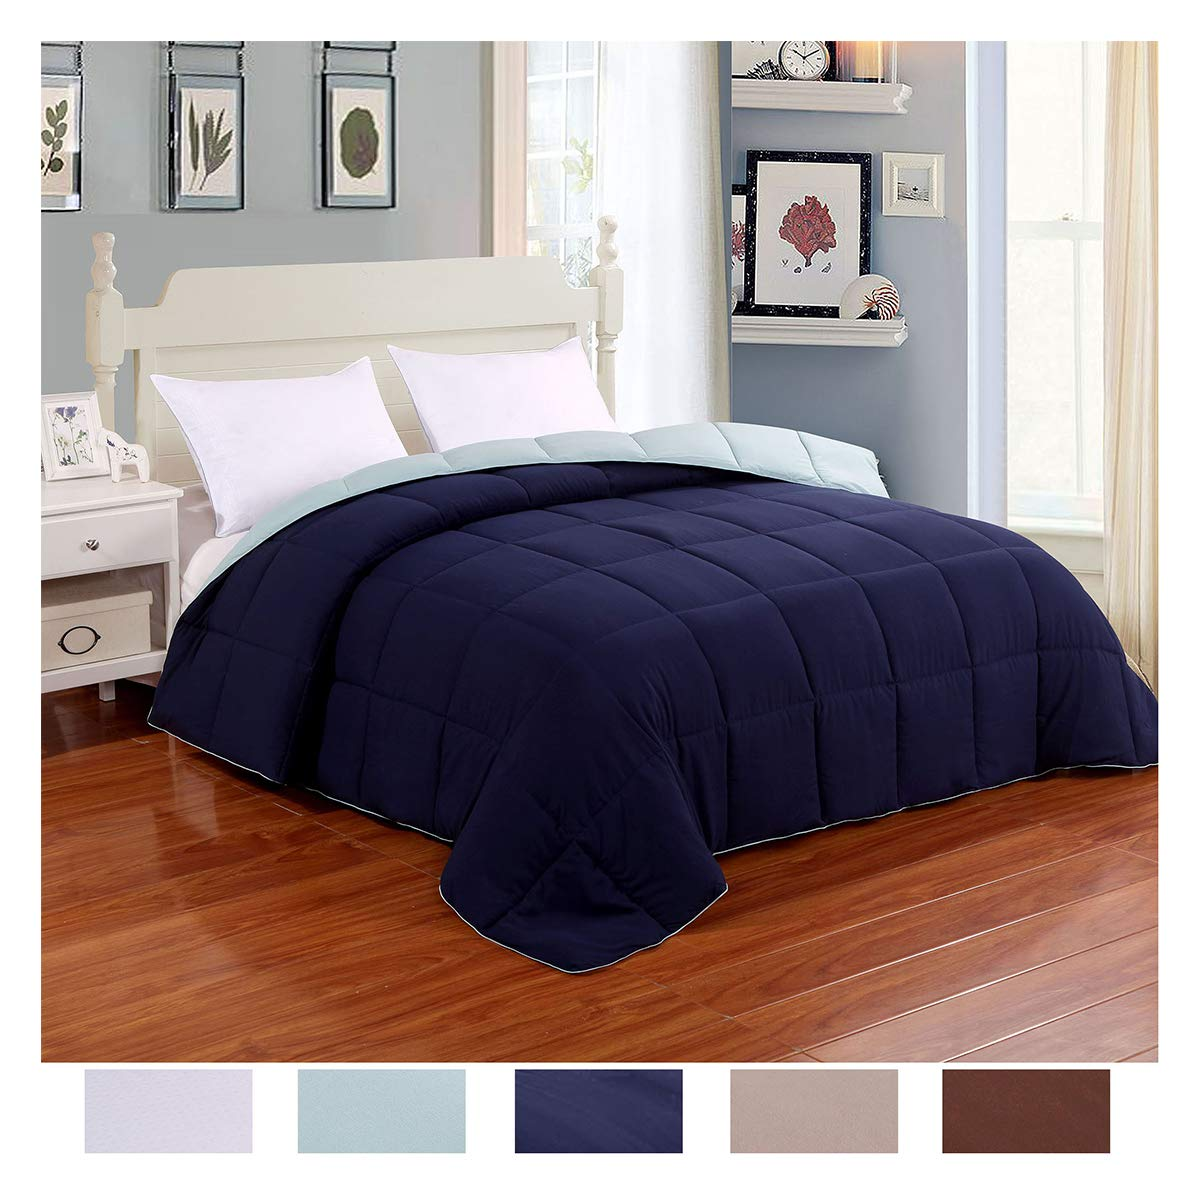 Homelike Moment Lightweight Reversible Comforter Down Alternative Queen All Season Duvet Insert Microfiber Comforter Navy/Light Blue Full/Queen Size with Corner Tabs Hypoallergenic